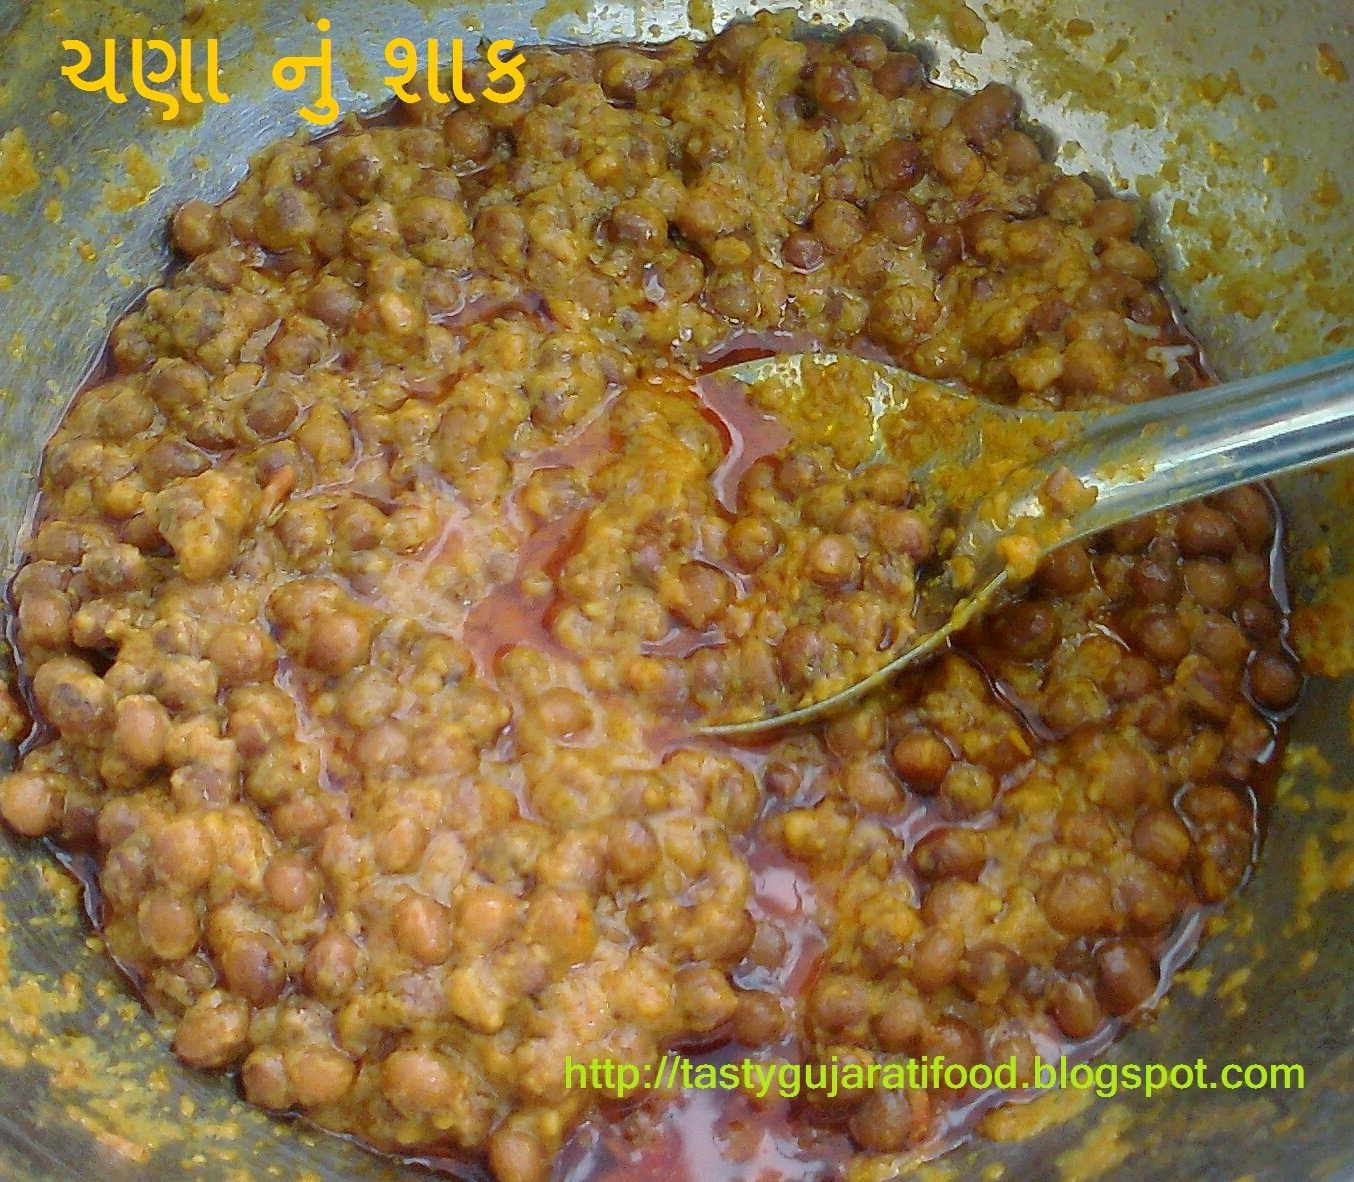 Chana nu shaak recipe in gujarati language read recipe and make chana nu shaak recipe in gujarati language read recipe and make healthy dry forumfinder Choice Image